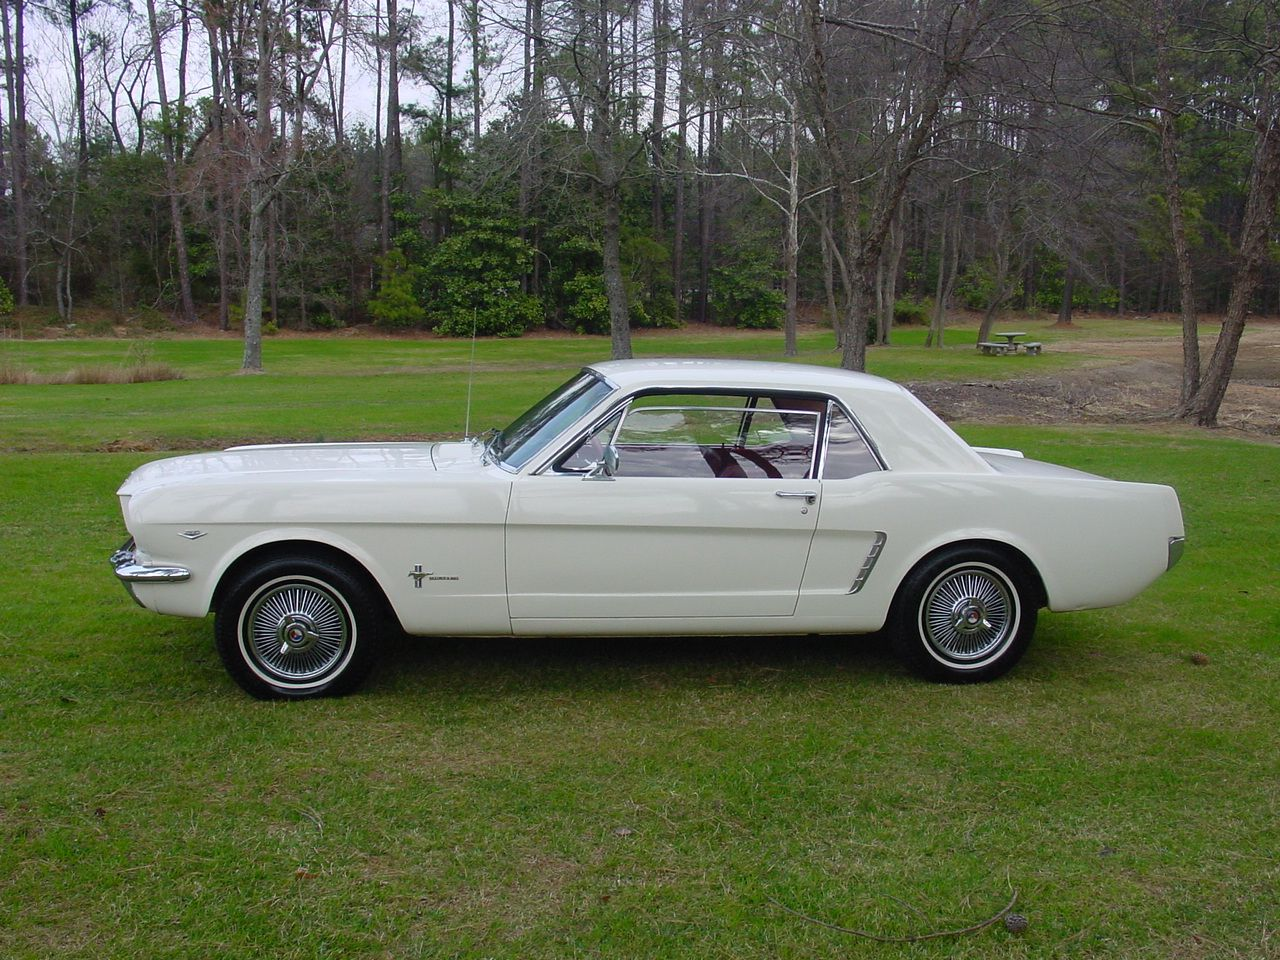 1964 MUSTANG 389 WHITE | Antique Cars, Classic Cars Collector, Cars ...